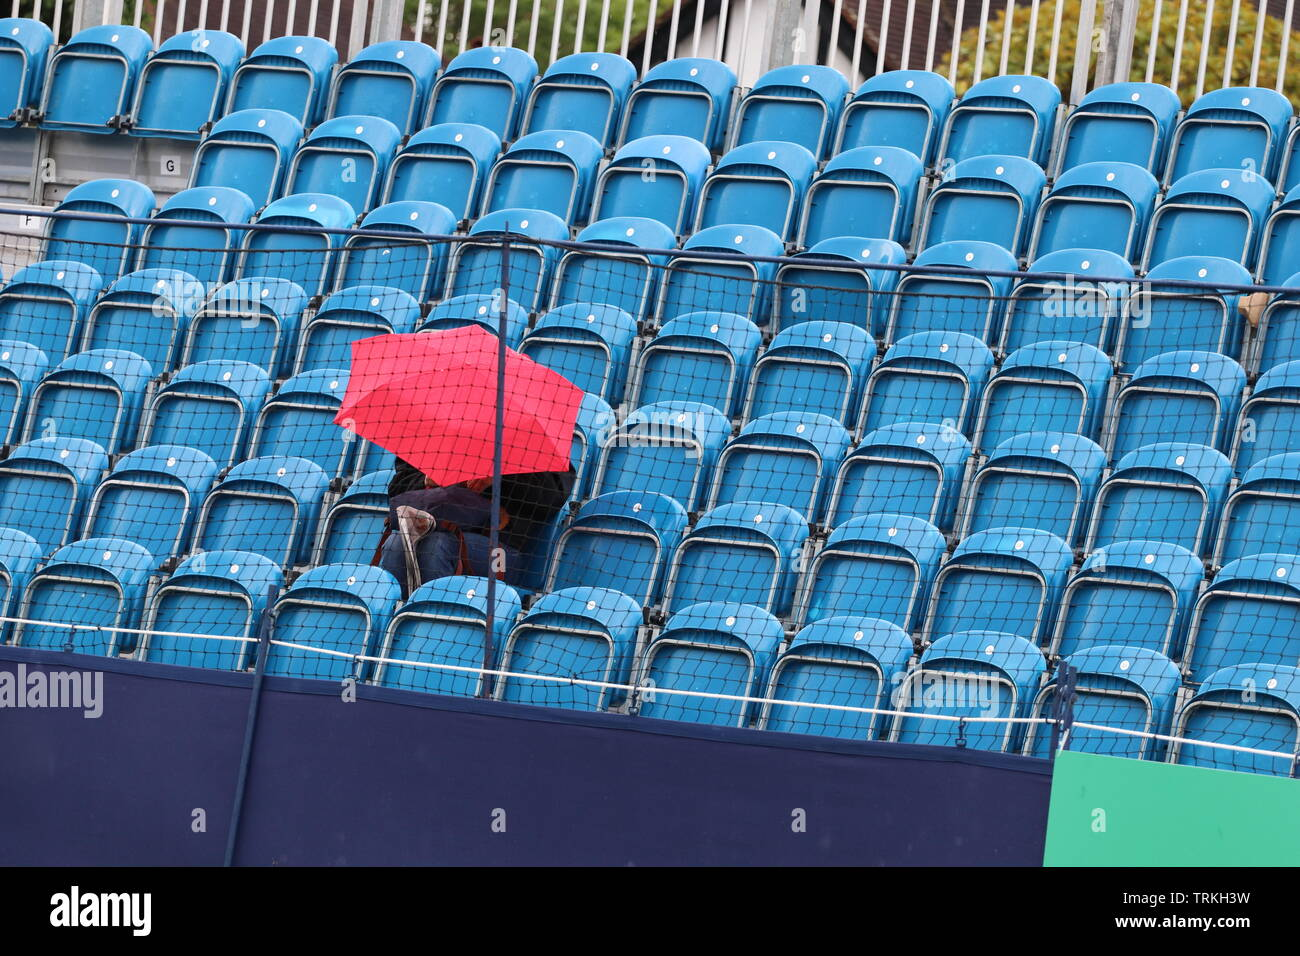 Surbiton, London: A single fan battles the rain in hope of seeing some tennis action later in the day at the 2019 Surbiton Trophy. Stock Photo